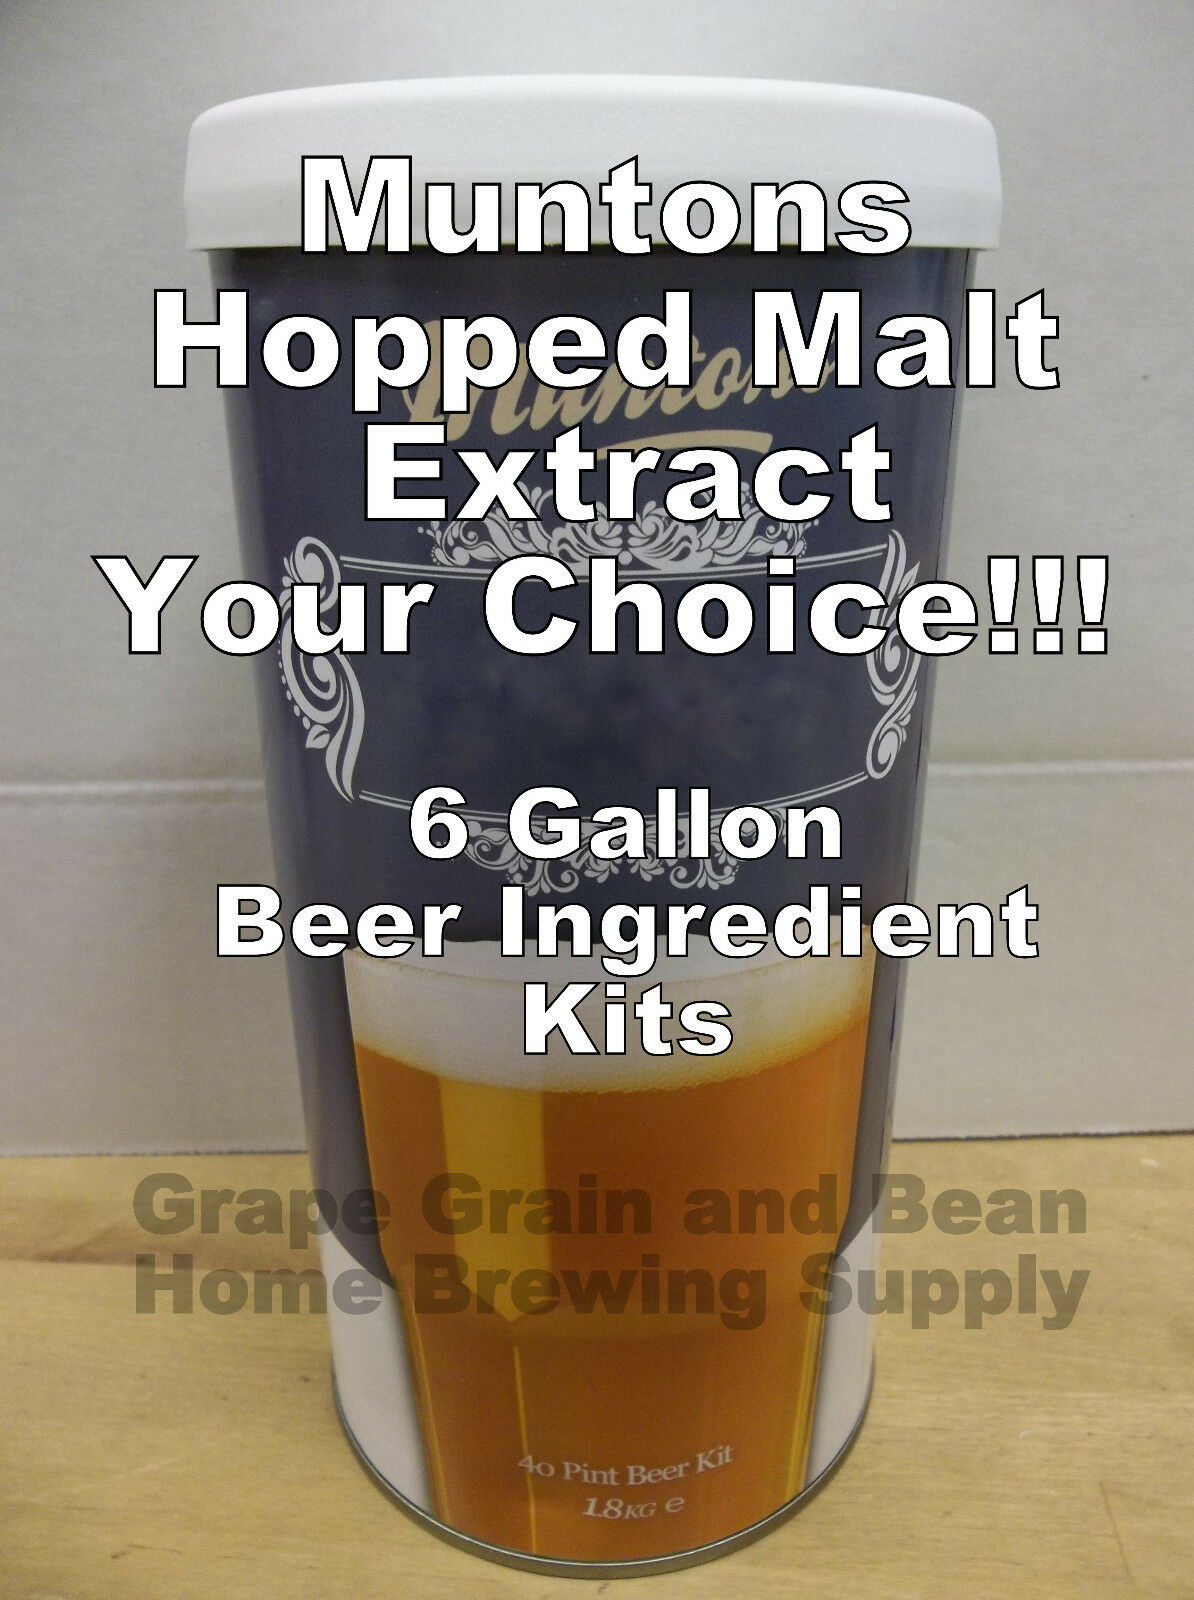 $26.75 - Muntons Beer Ingredient Kits, Hopped Beer Kits, 6 Gallon Beer Making Ingredients